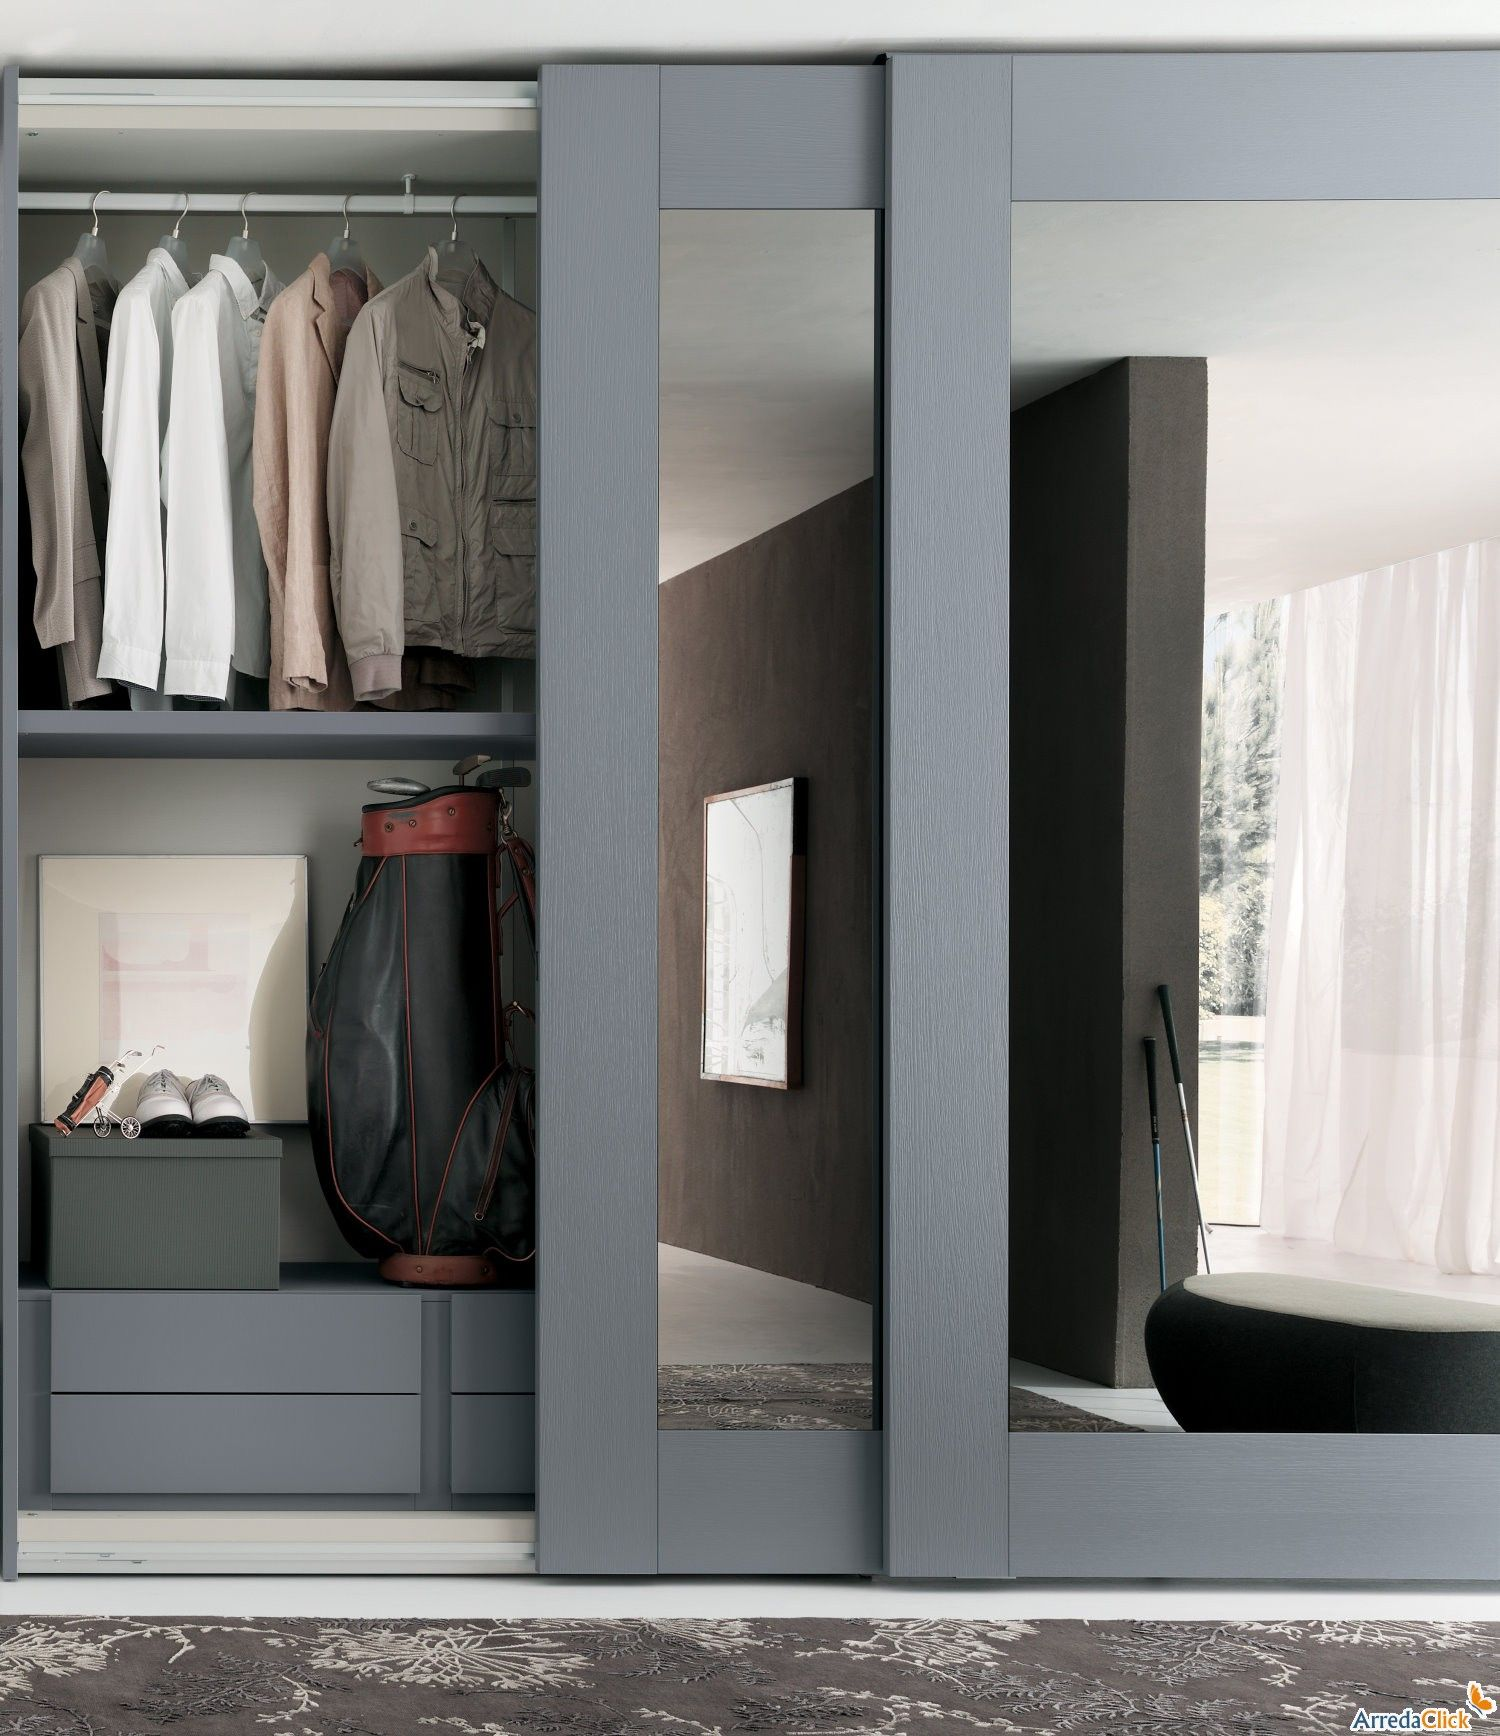 3 panel mirror sliding closet doors - Create A New Look For Your Room With These Closet Door Ideas Mirrored Sliding